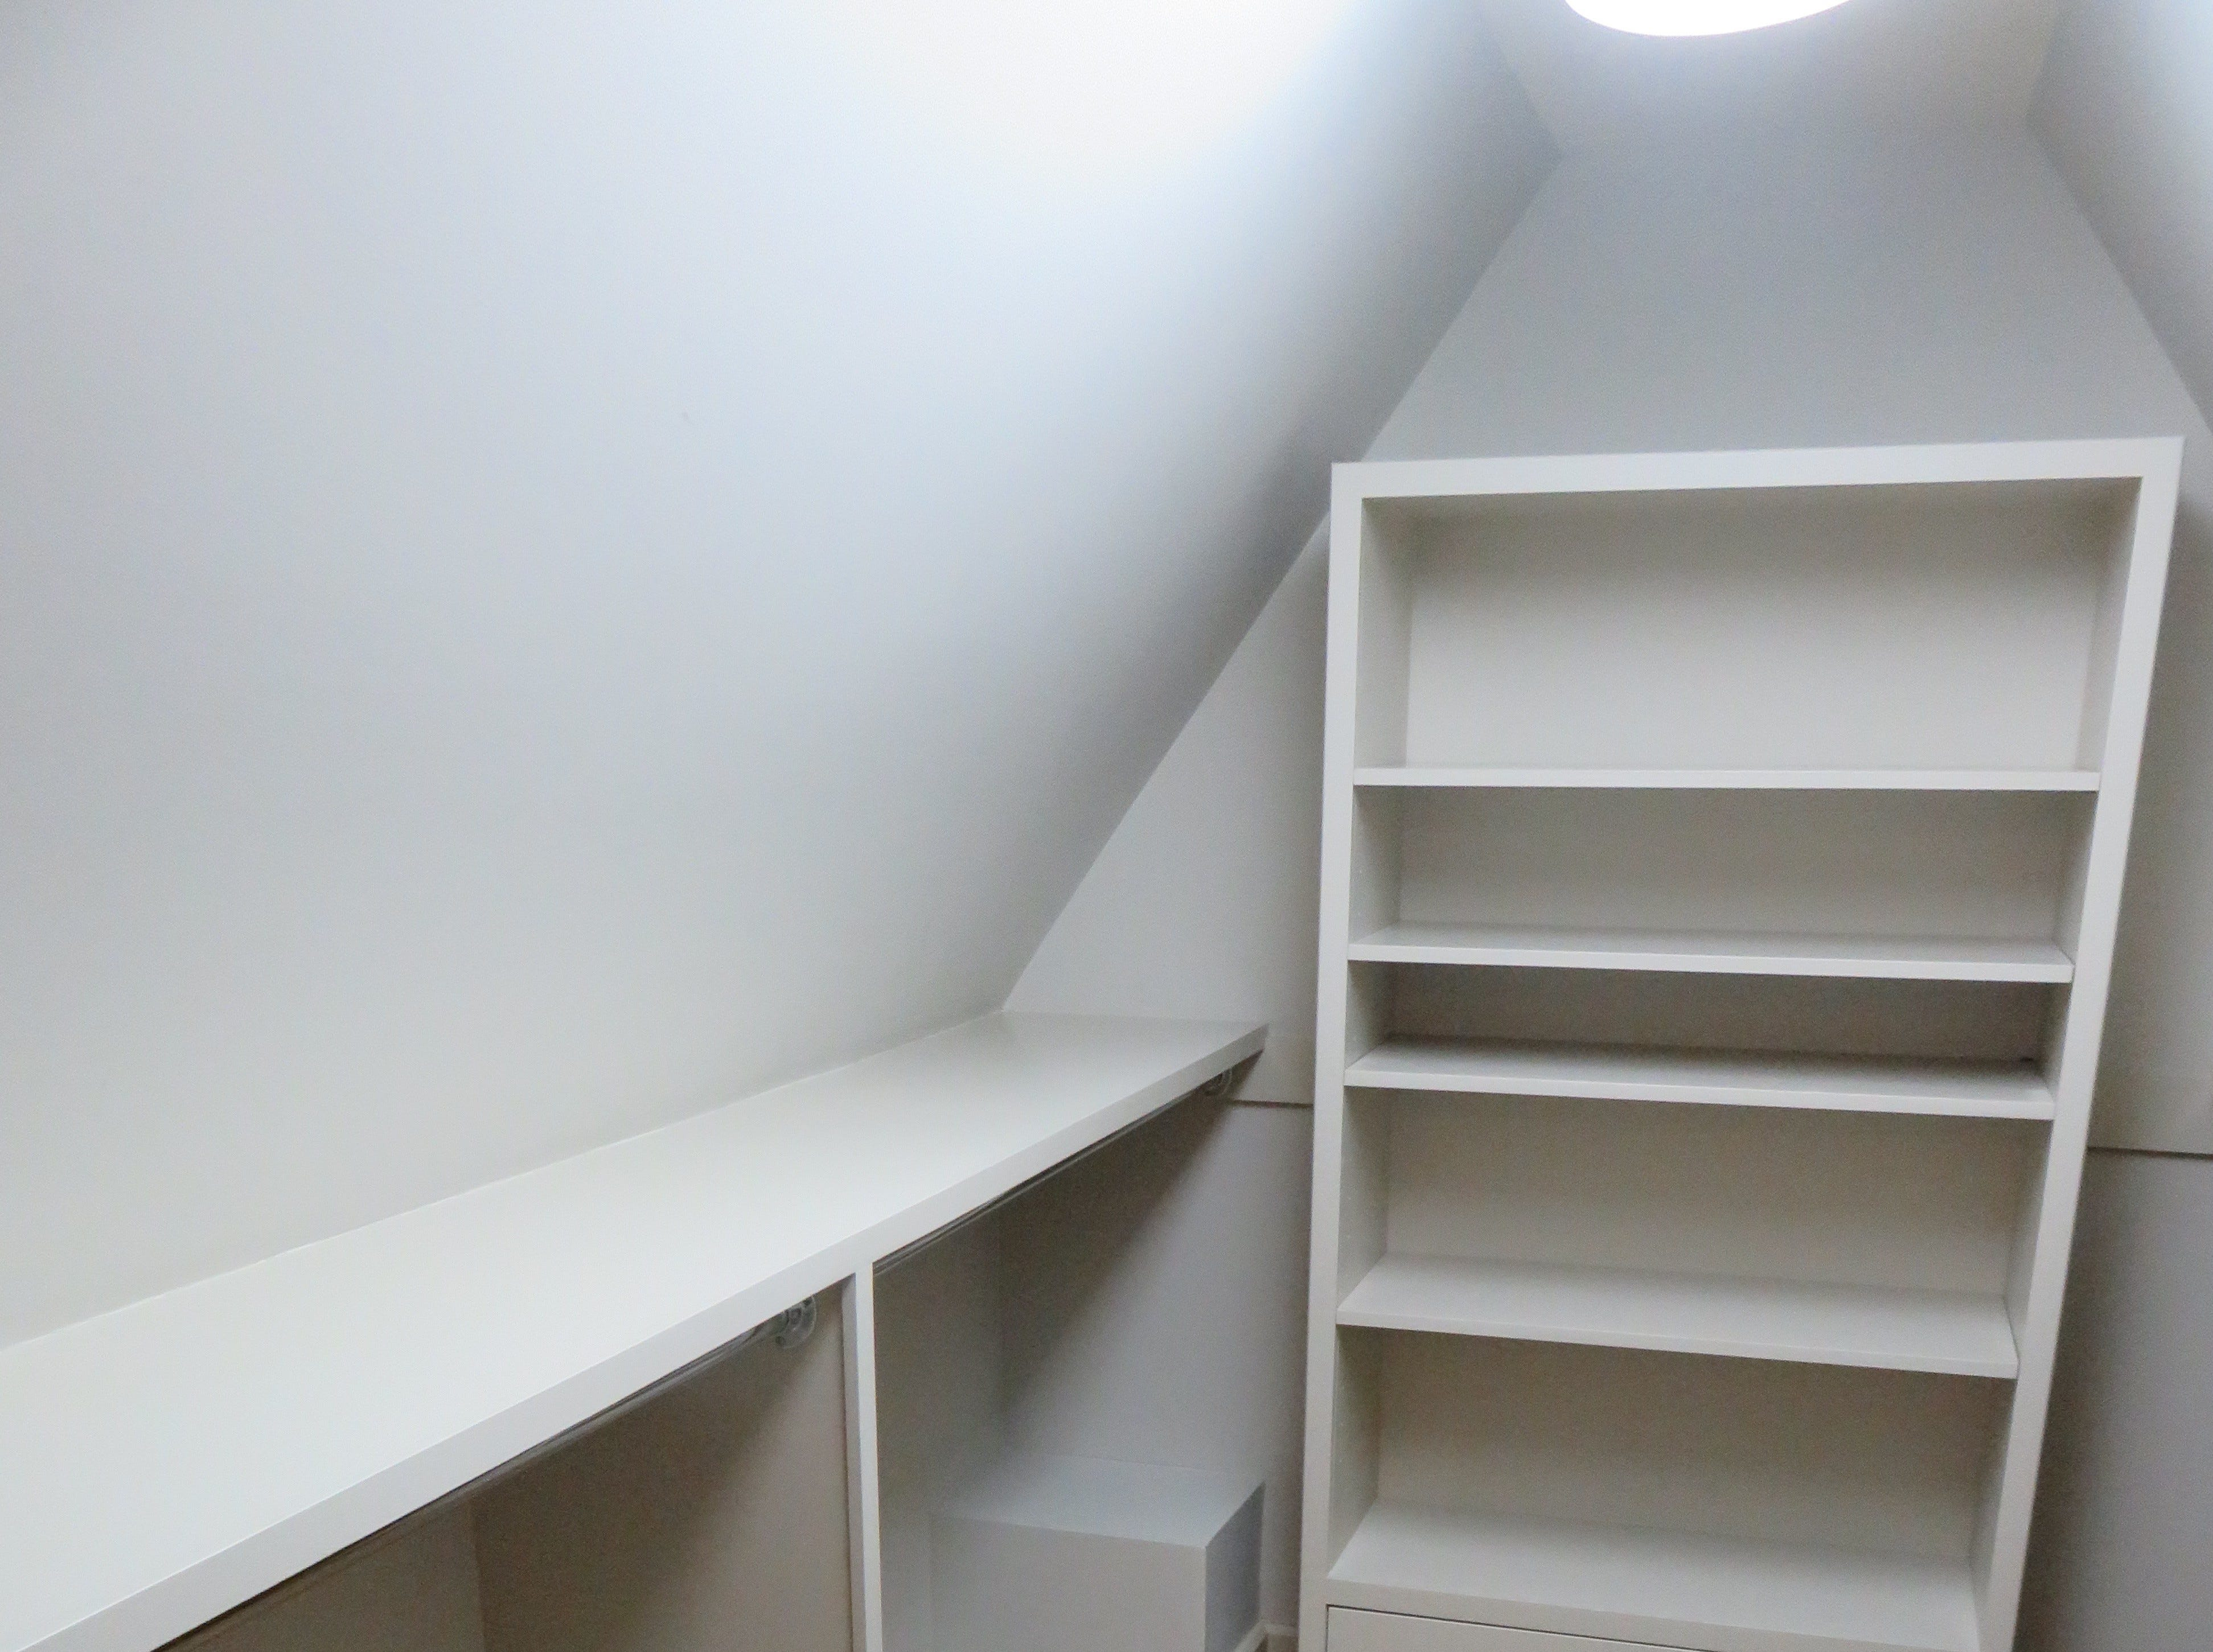 One of the expansive closets on upper floor of the Magnolia Bluff home.